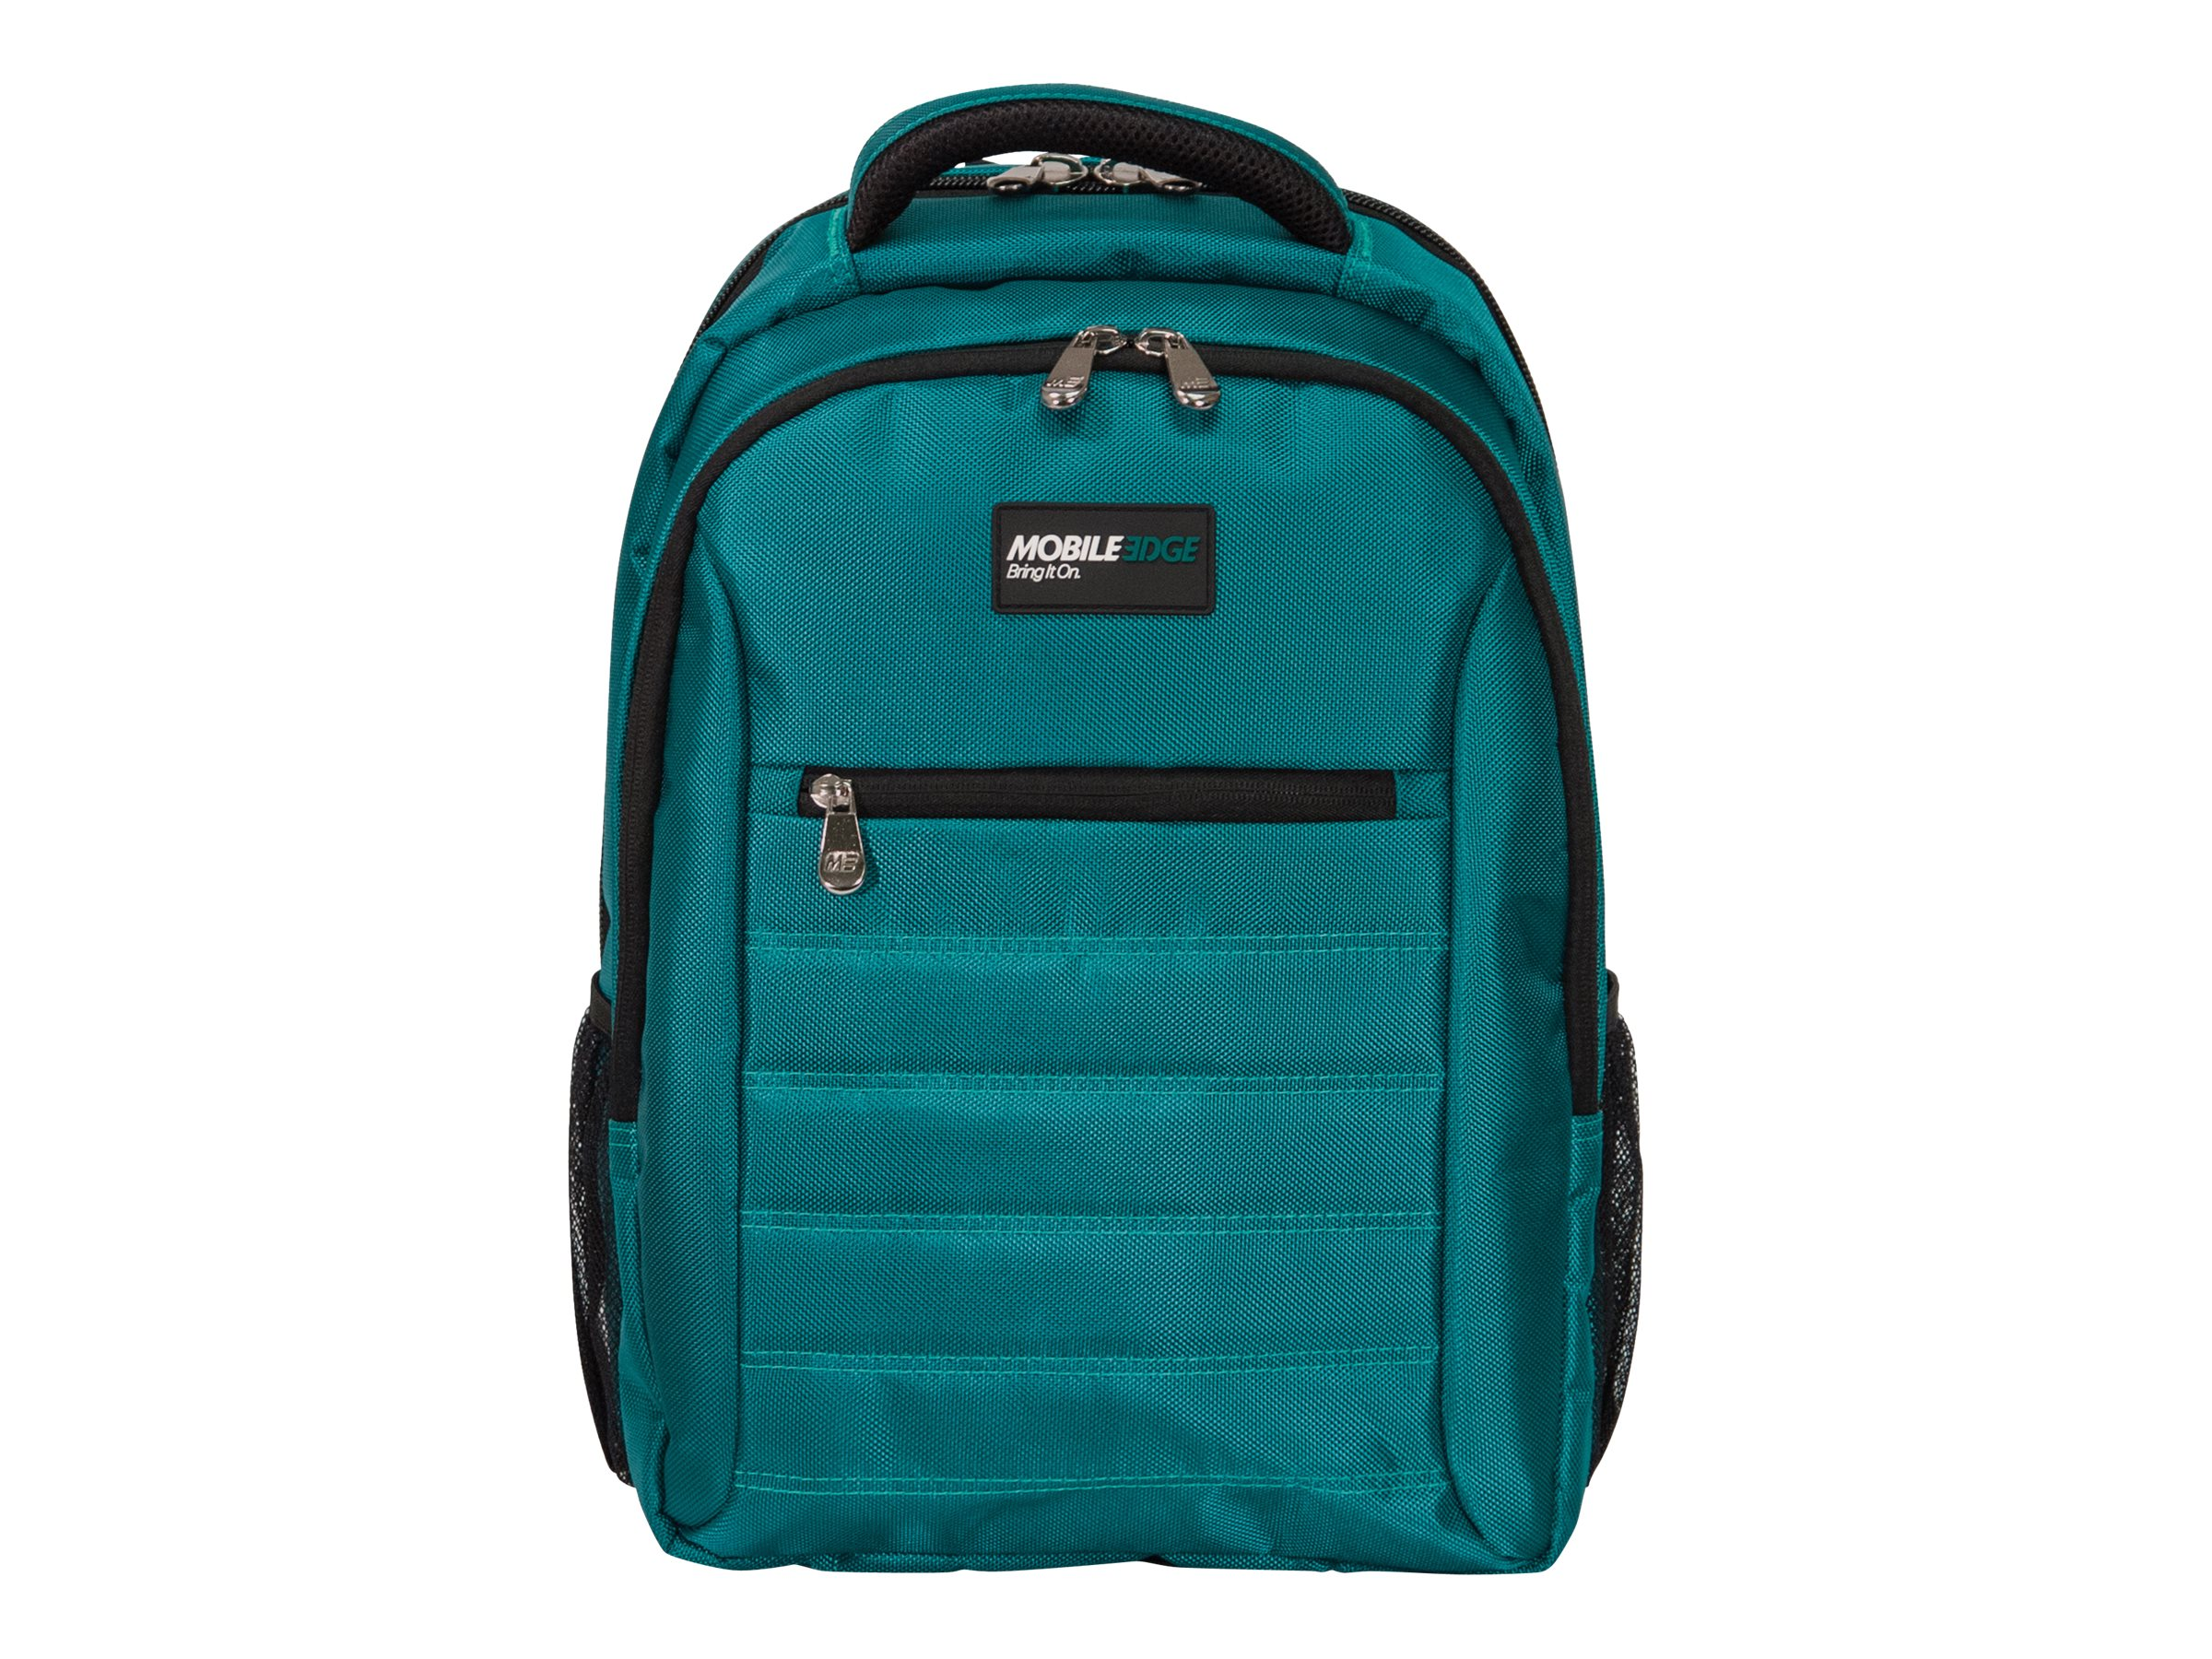 Mobile Edge SmartPack 16 17 for Mac, Teal